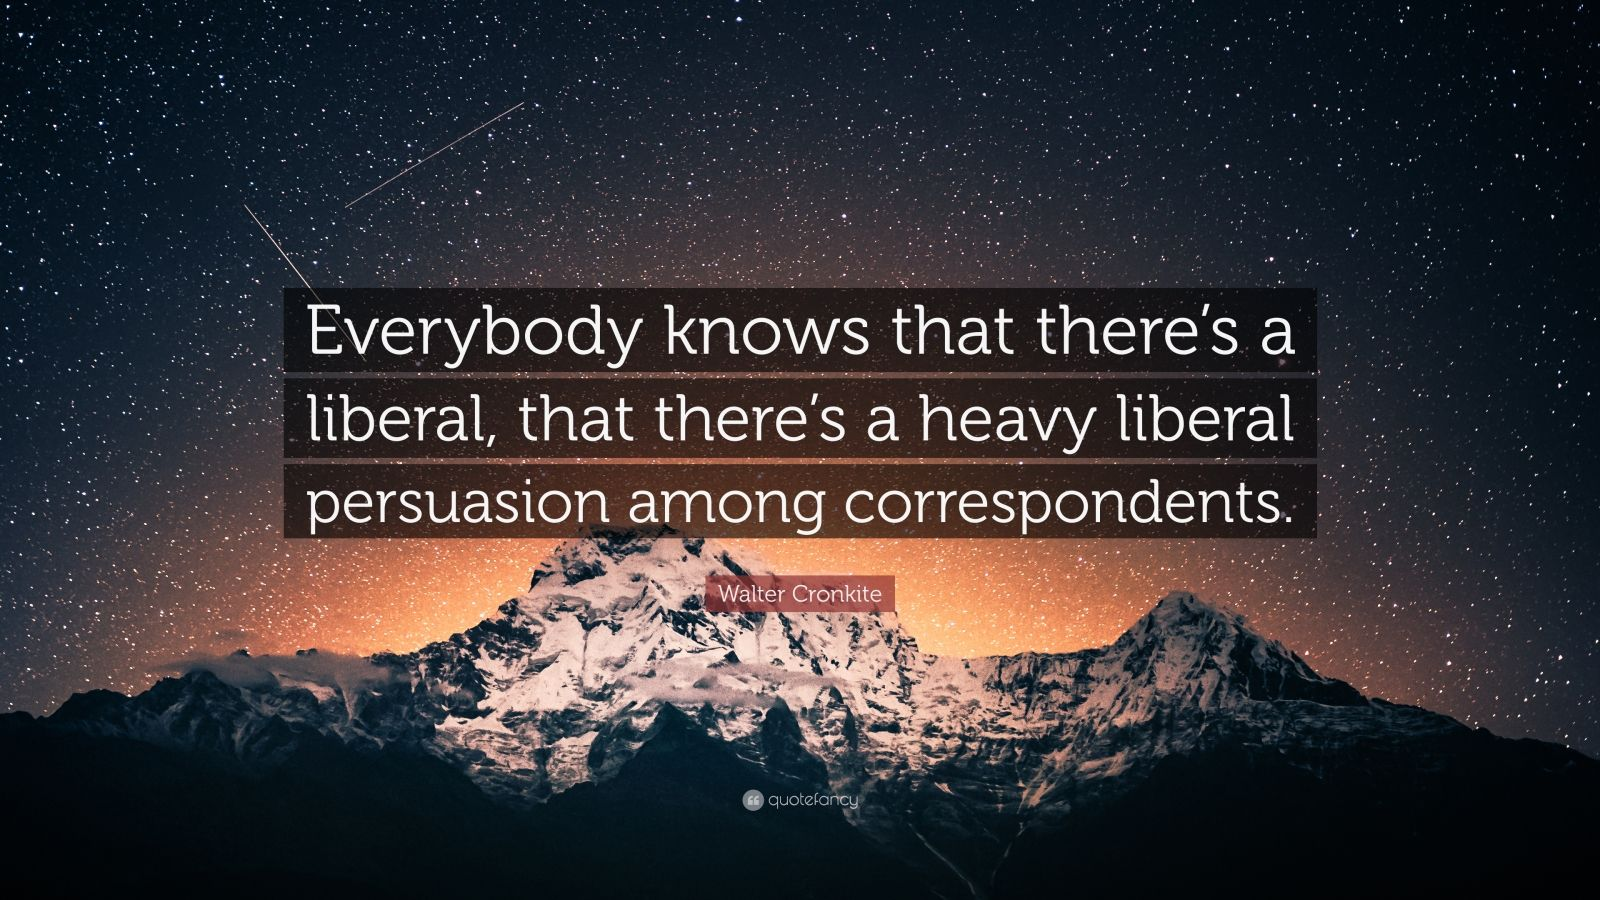 """Walter Cronkite Quote: """"Everybody knows that there's a liberal, that there's a heavy liberal persuasion among correspondents."""""""